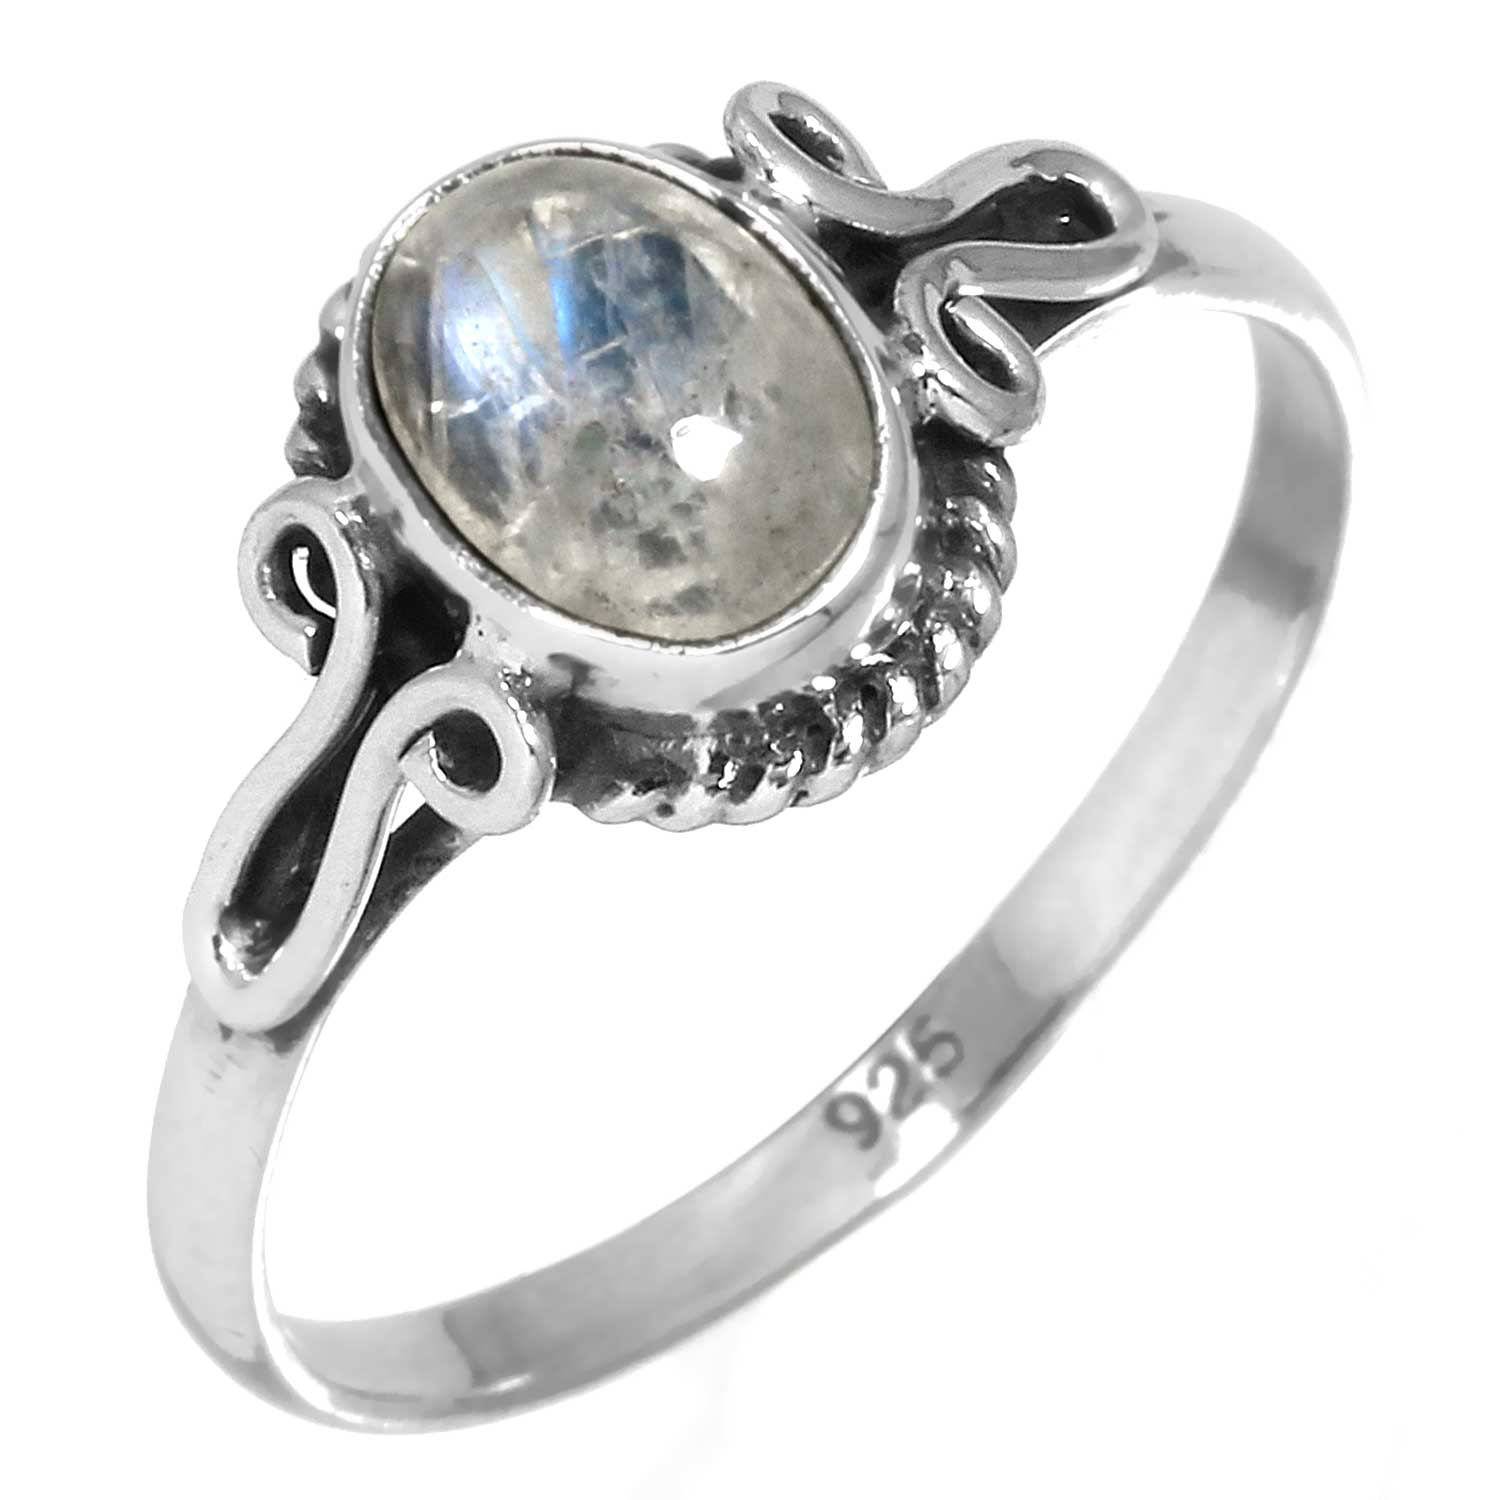 Sterling silver Rainbow Moonstone (9x12mm) Ring ID=rg706rm